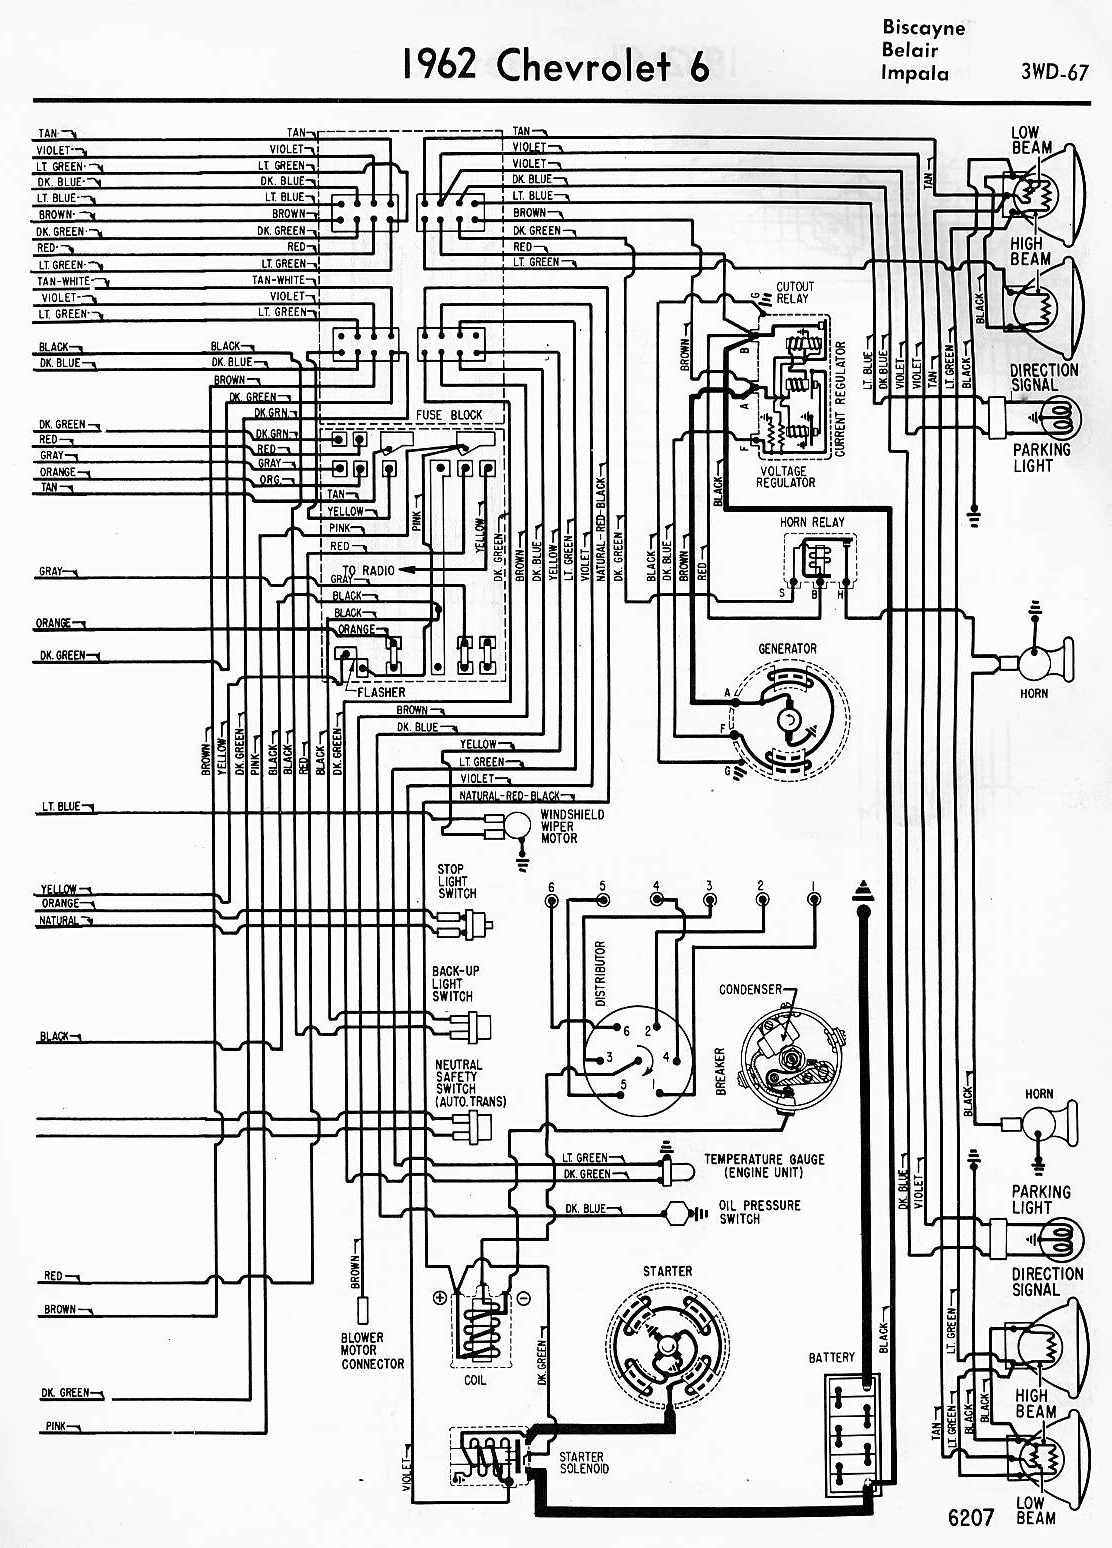 Electrical Wiring Diagram Of 1964 Chevrolet 6?resize=665%2C926 1964 impala headlight wiring diagram wiring diagram  at readyjetset.co